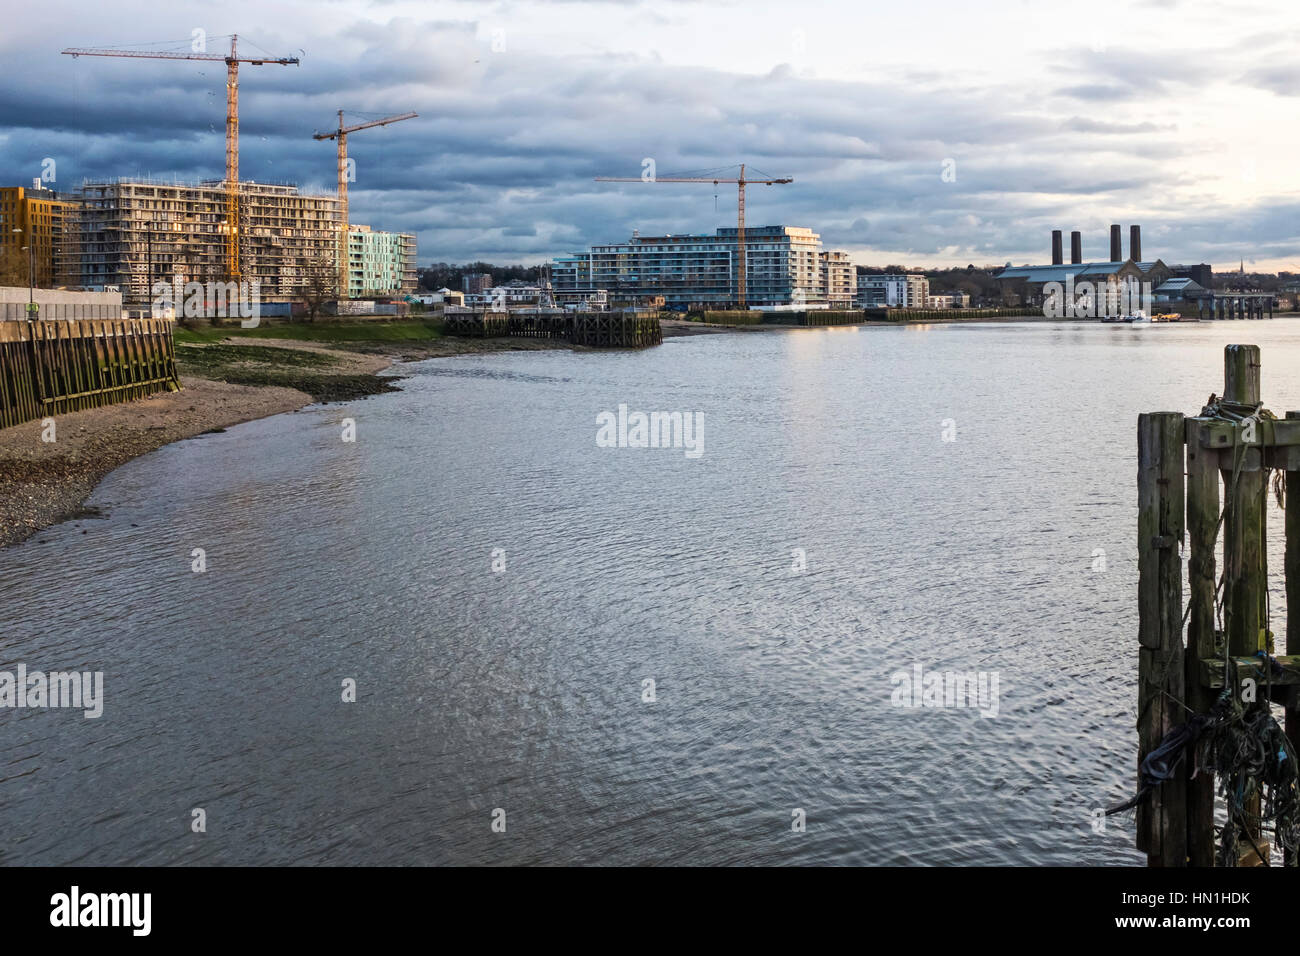 New Build apartments and construction sites of luxury apartment blocks, next to Thames river, Greenwich, London - Stock Image